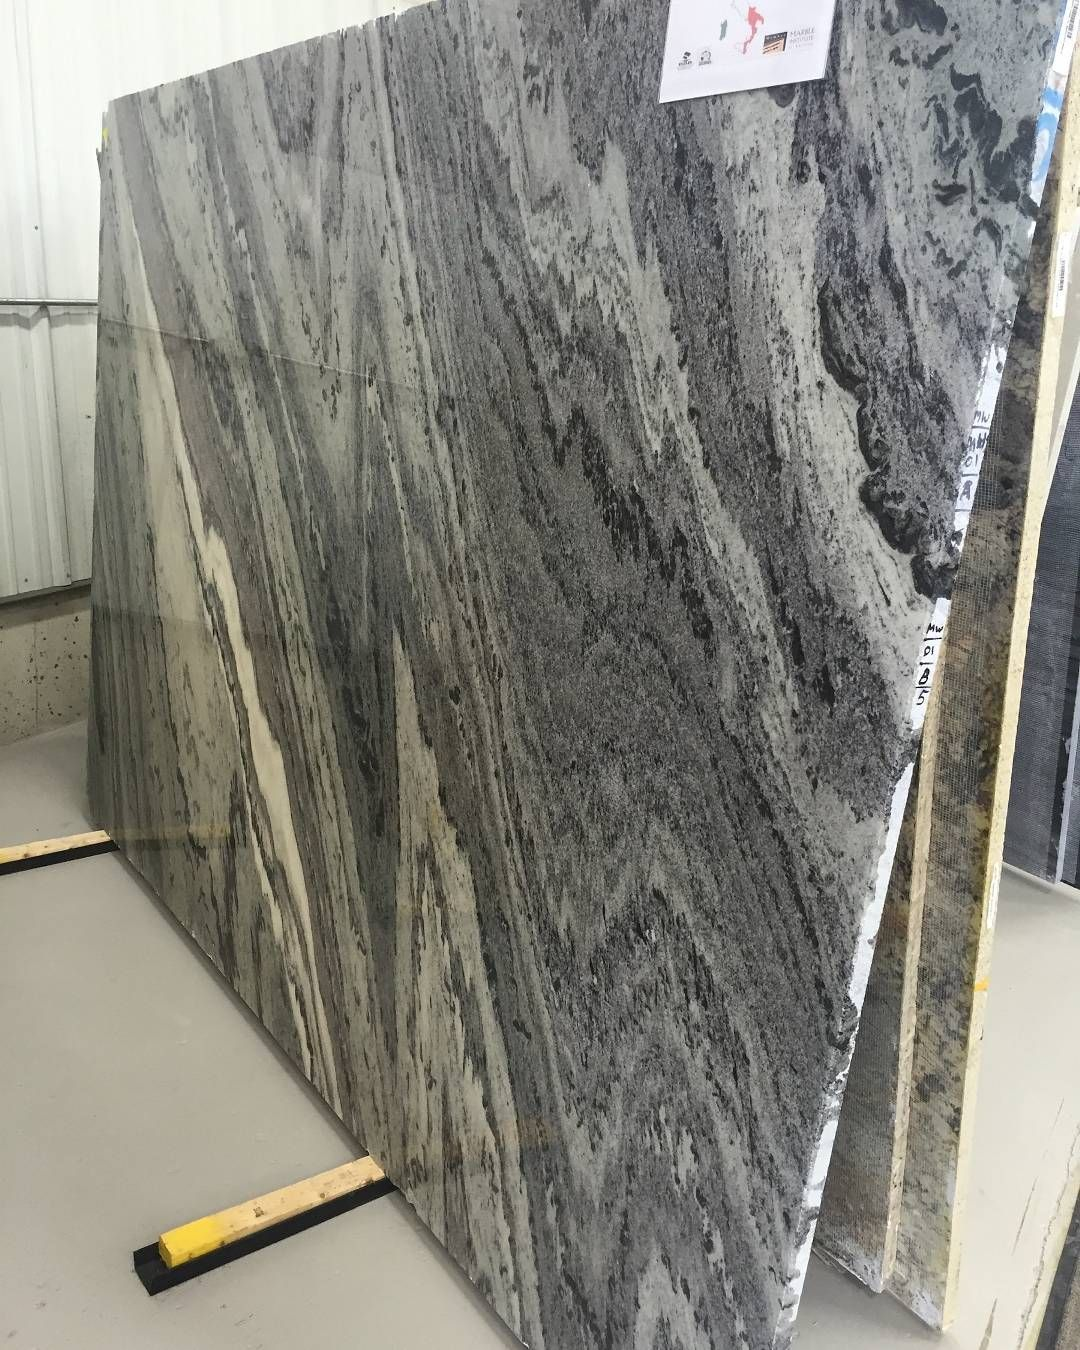 Mercury Granite From Italy Has Dramatic Black And White Veining That Create A Strong Sense Of Movement This Stone Is Sophisticated Accompaniment To Sleek